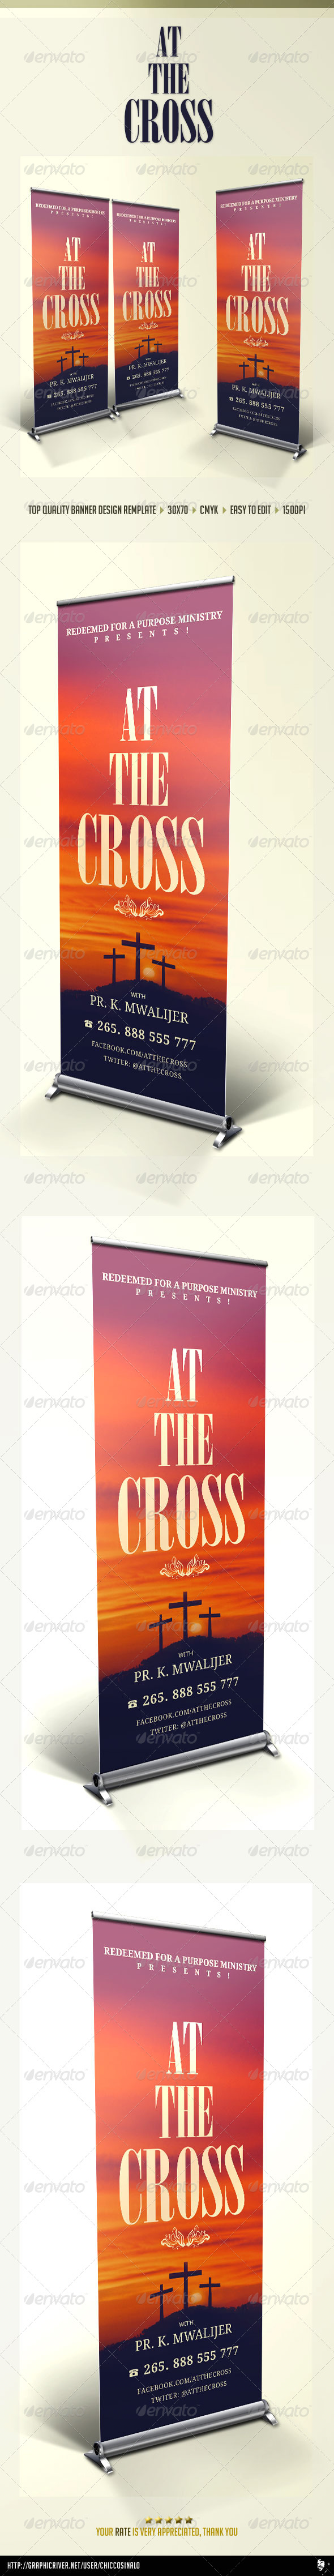 At The Cross Concert Banner - Signage Print Templates